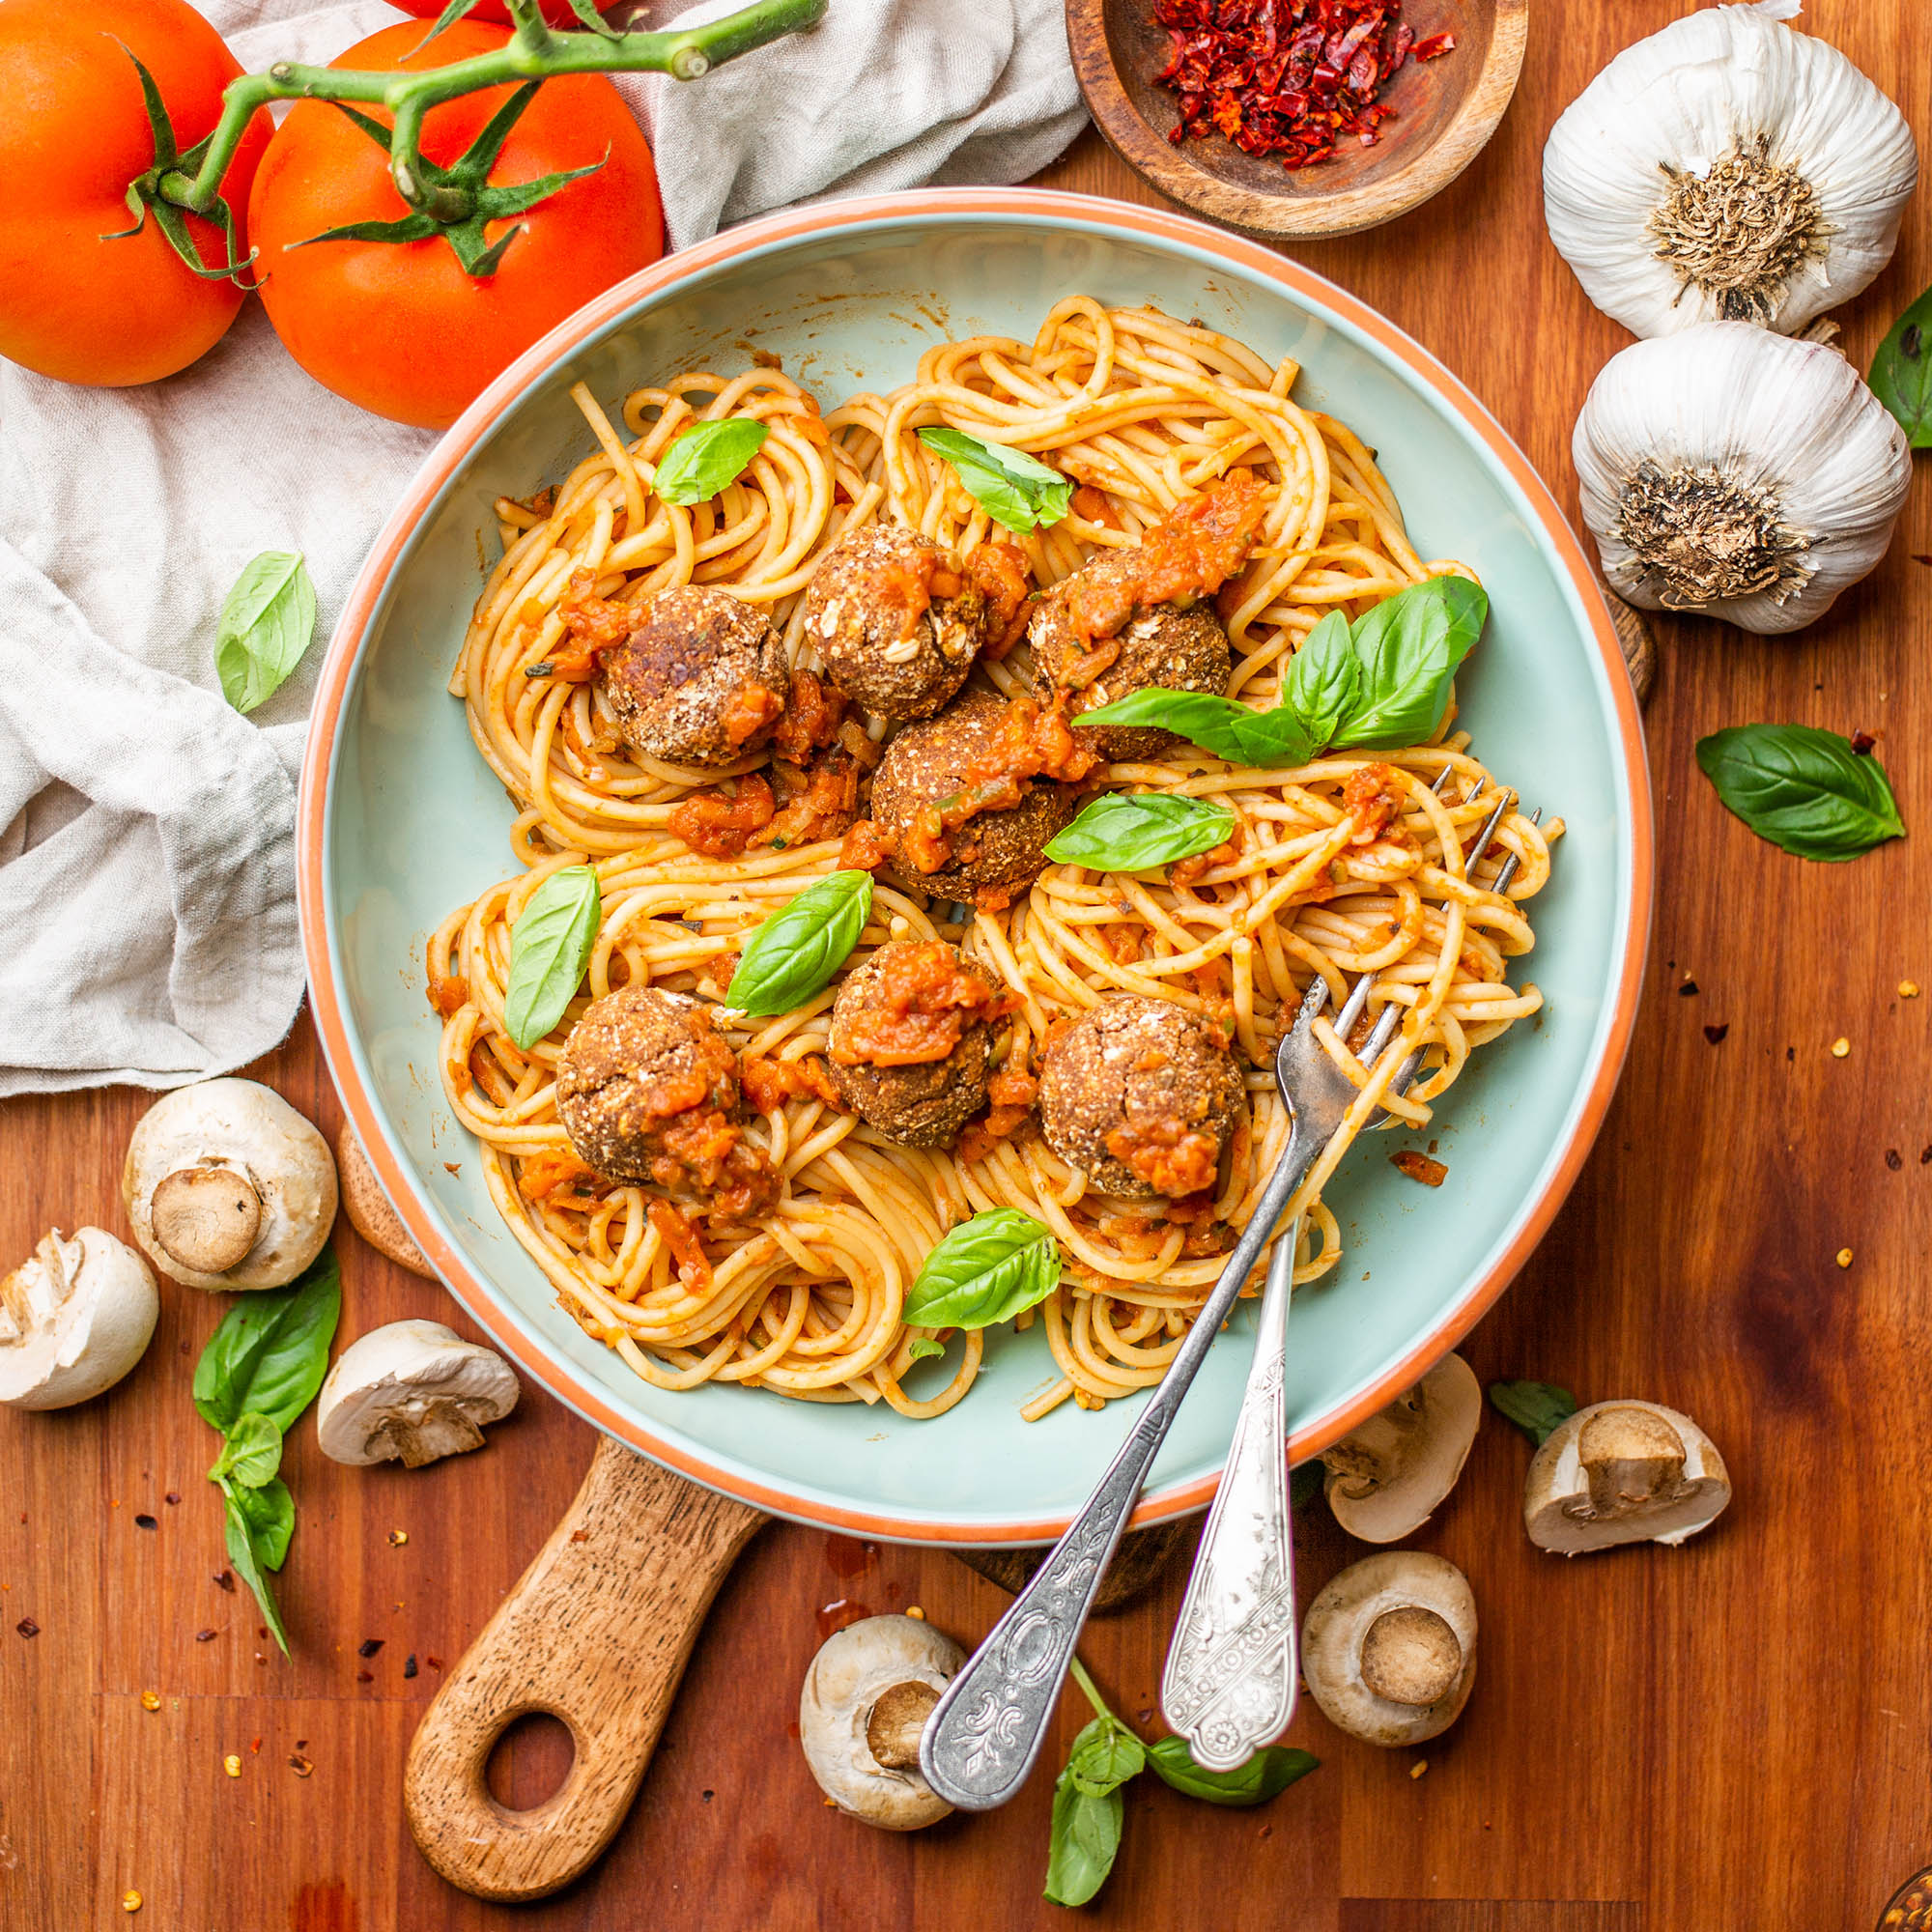 Vegan Spaghetti Meatball Bolognese with Lentil and Walnut Meatballs